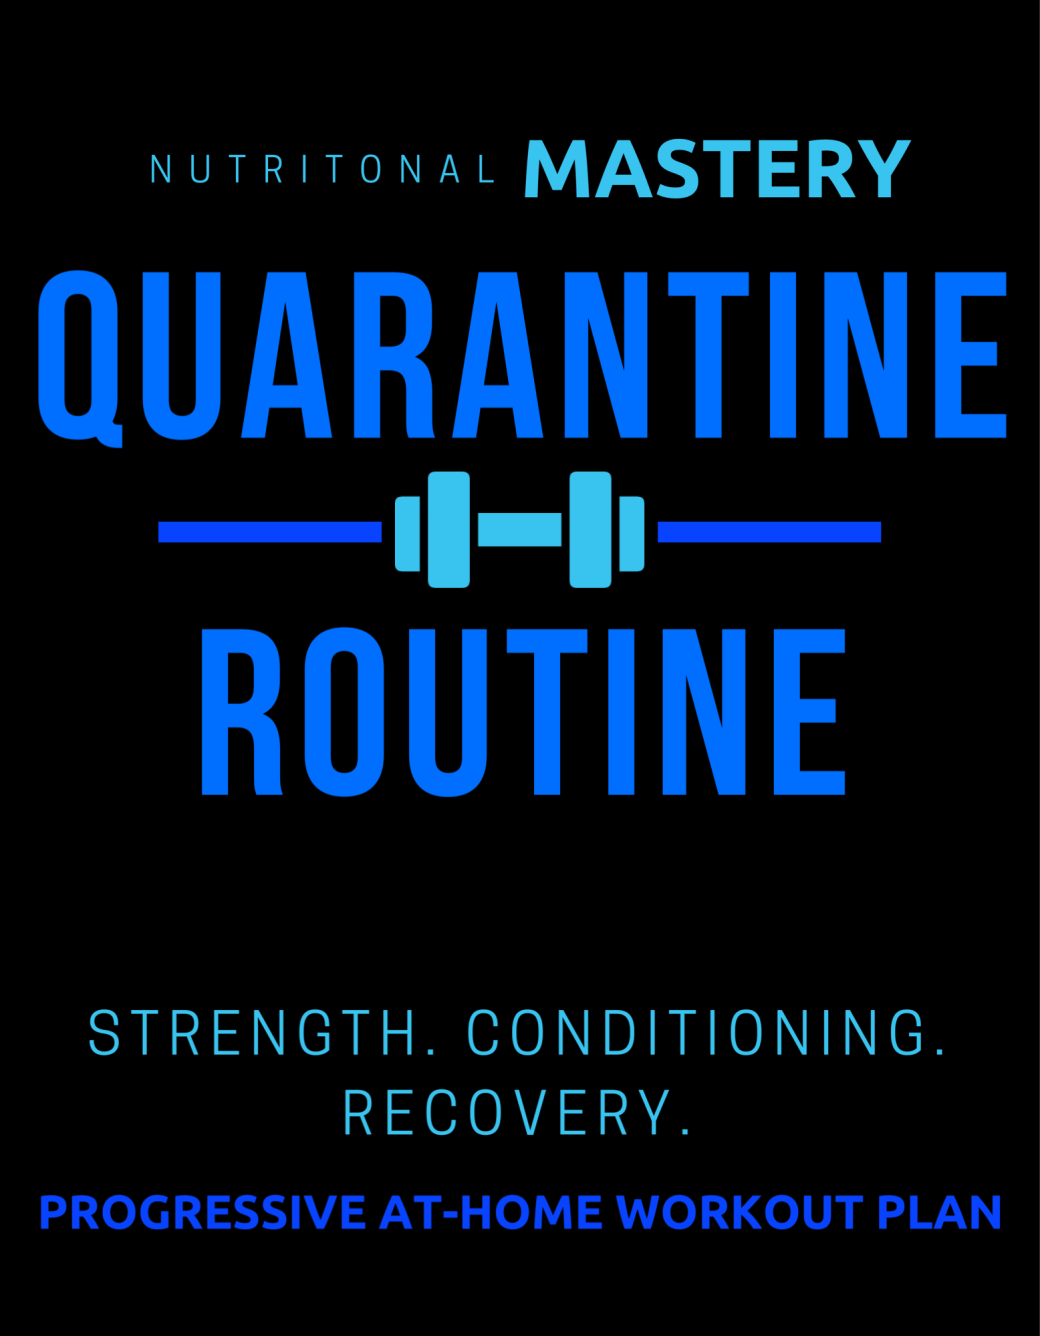 Copy of Quarantine Workout